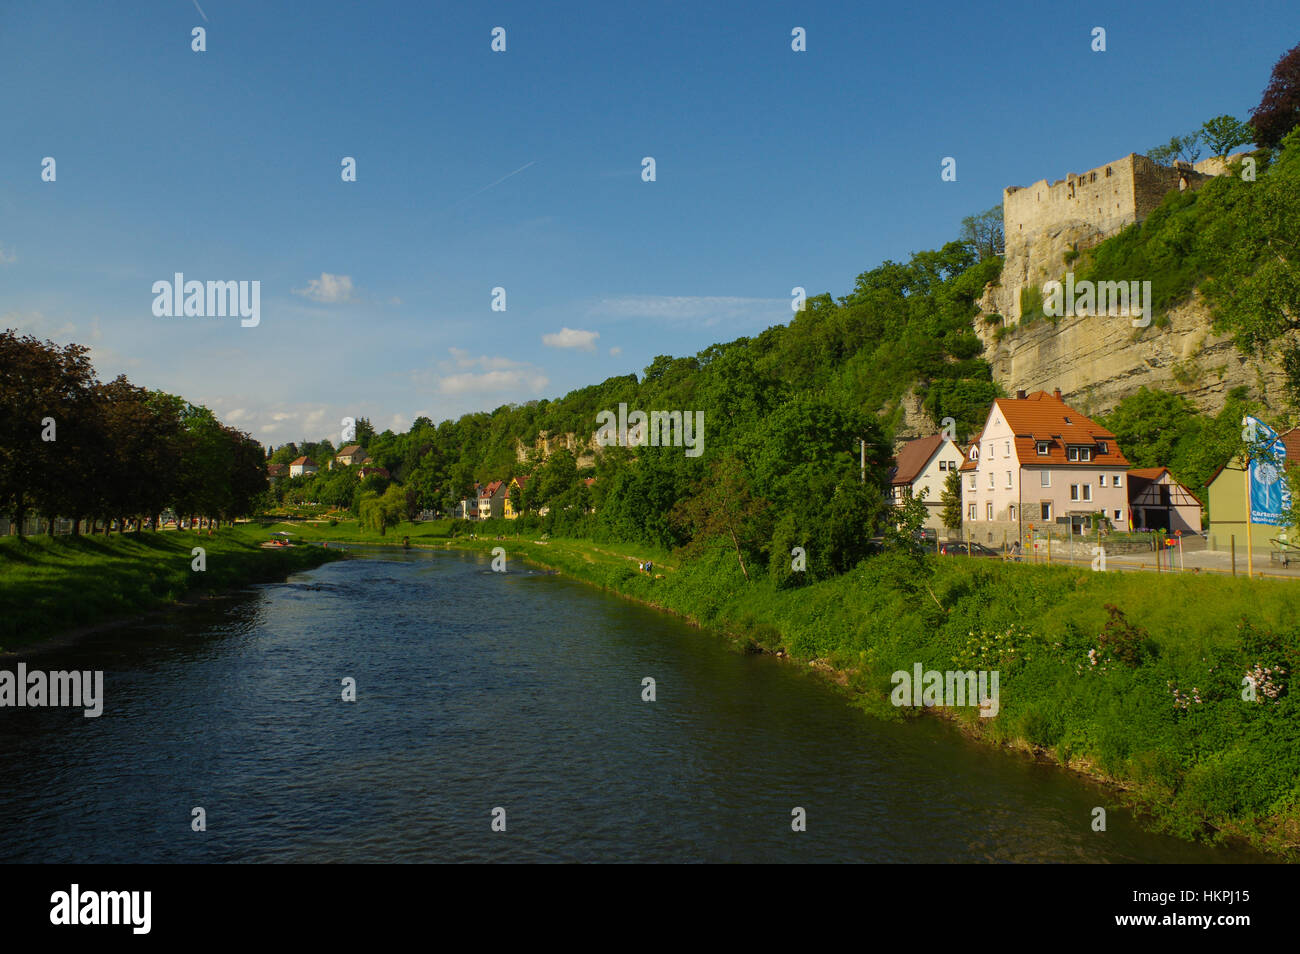 the River Enz in Muhlacker, Baden-Wuerttemberg, Germany, Europe - Stock Image